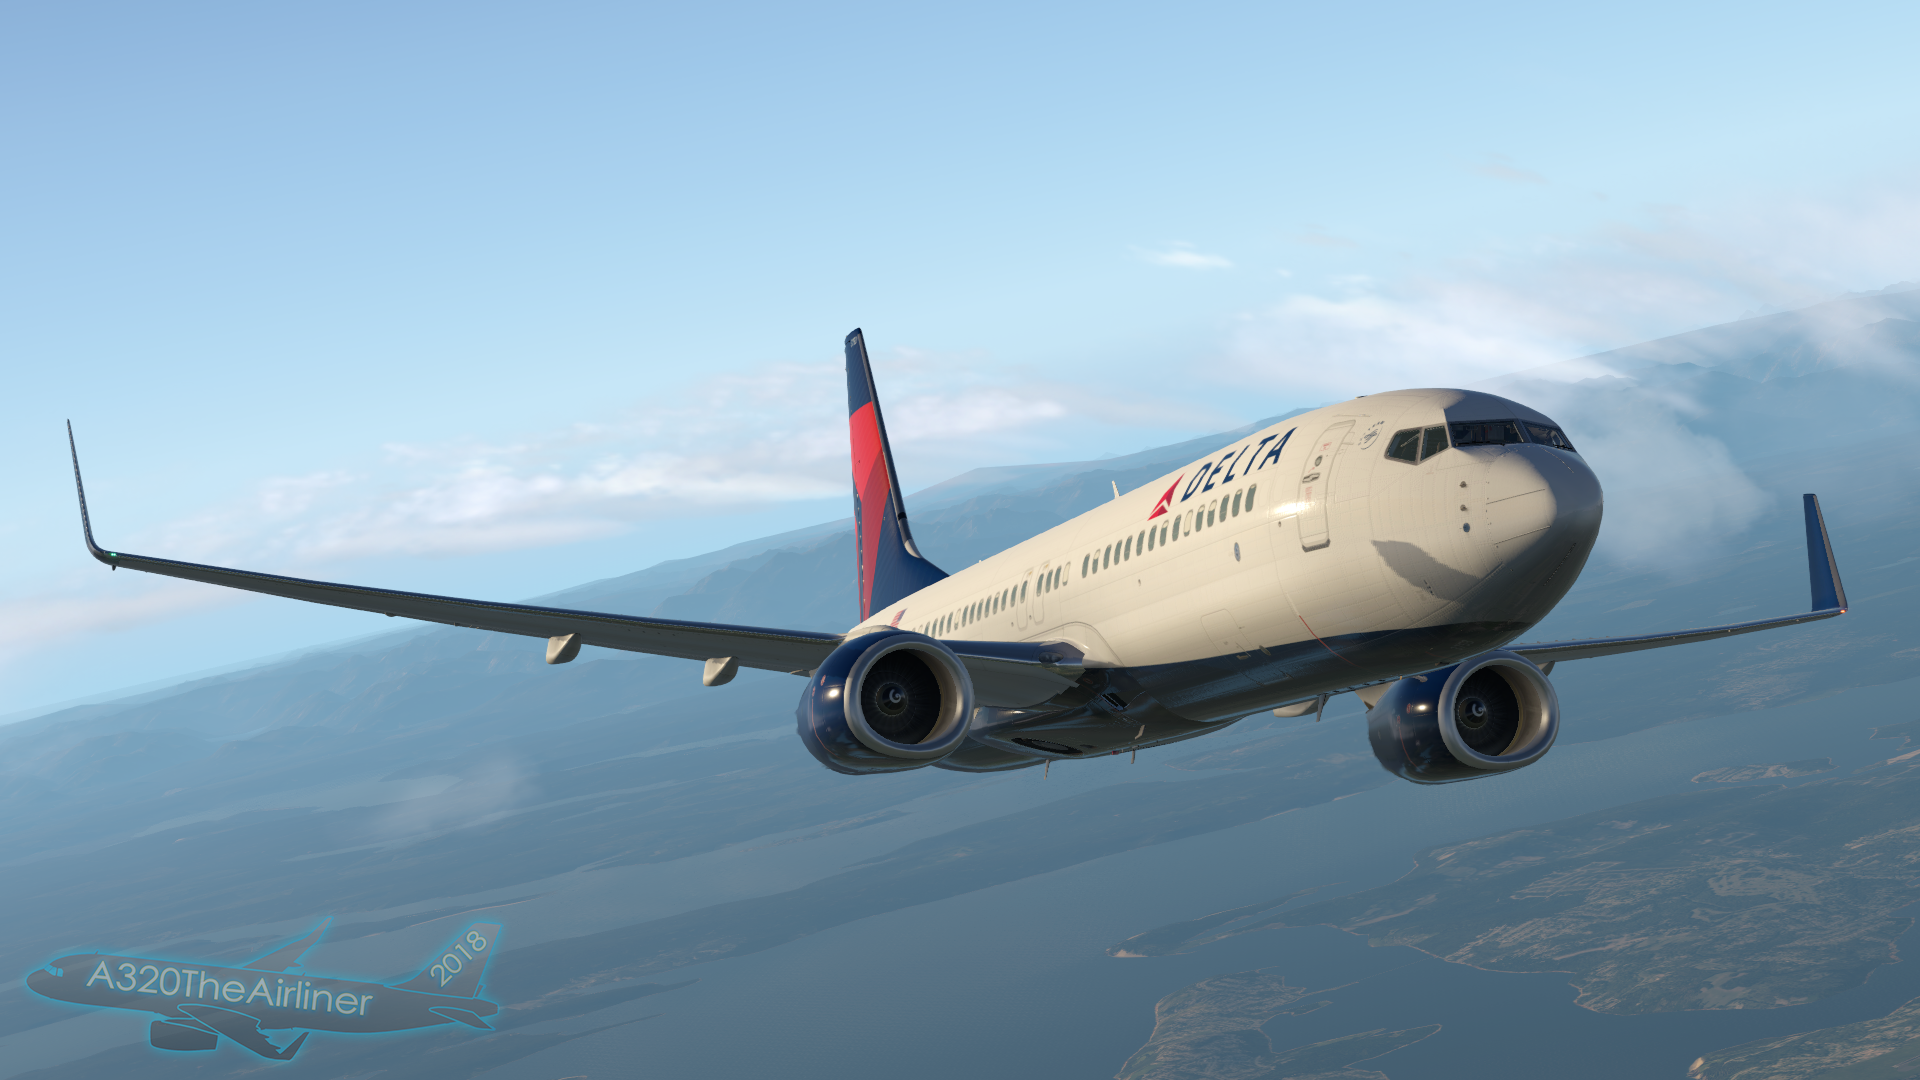 Delta Air Lines Wallpaper: X-Plane 11 By A320TheAirliner